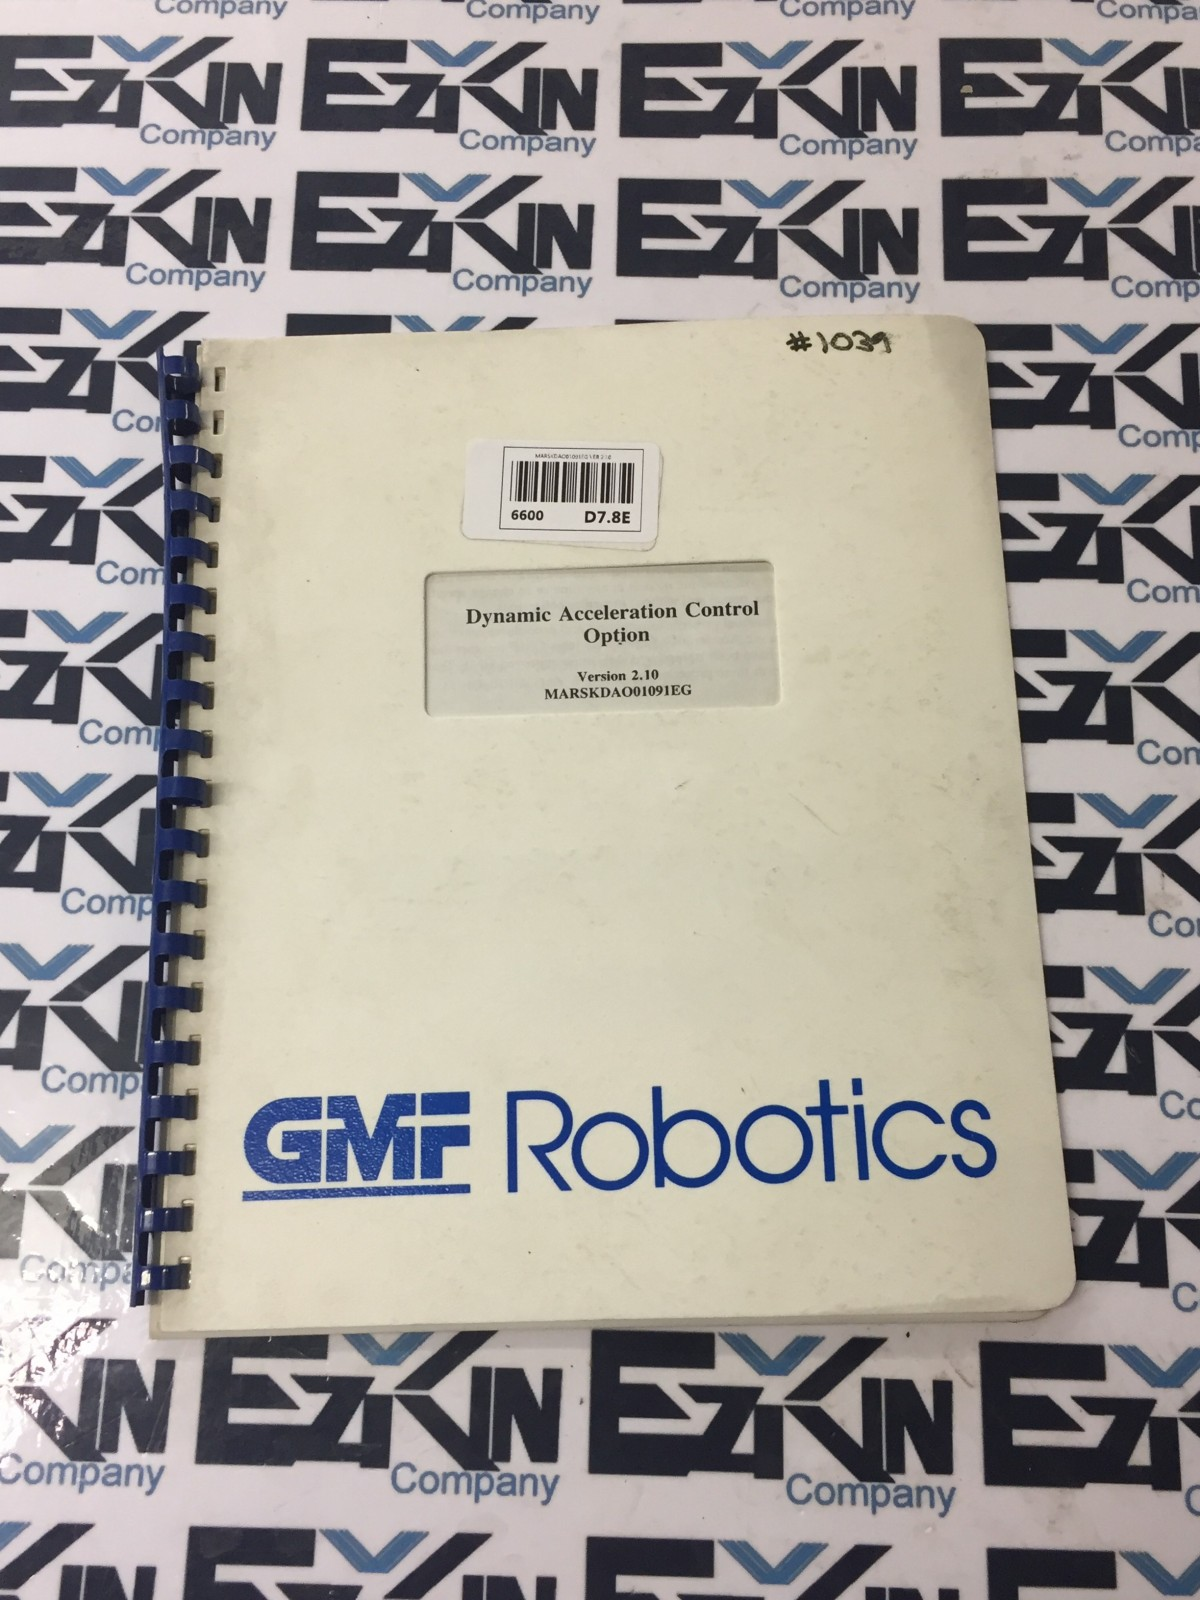 GMF FANUC DYNAMIC ACCELERATION CONTROL OPTION MANUAL BOOOK  VER.2.10